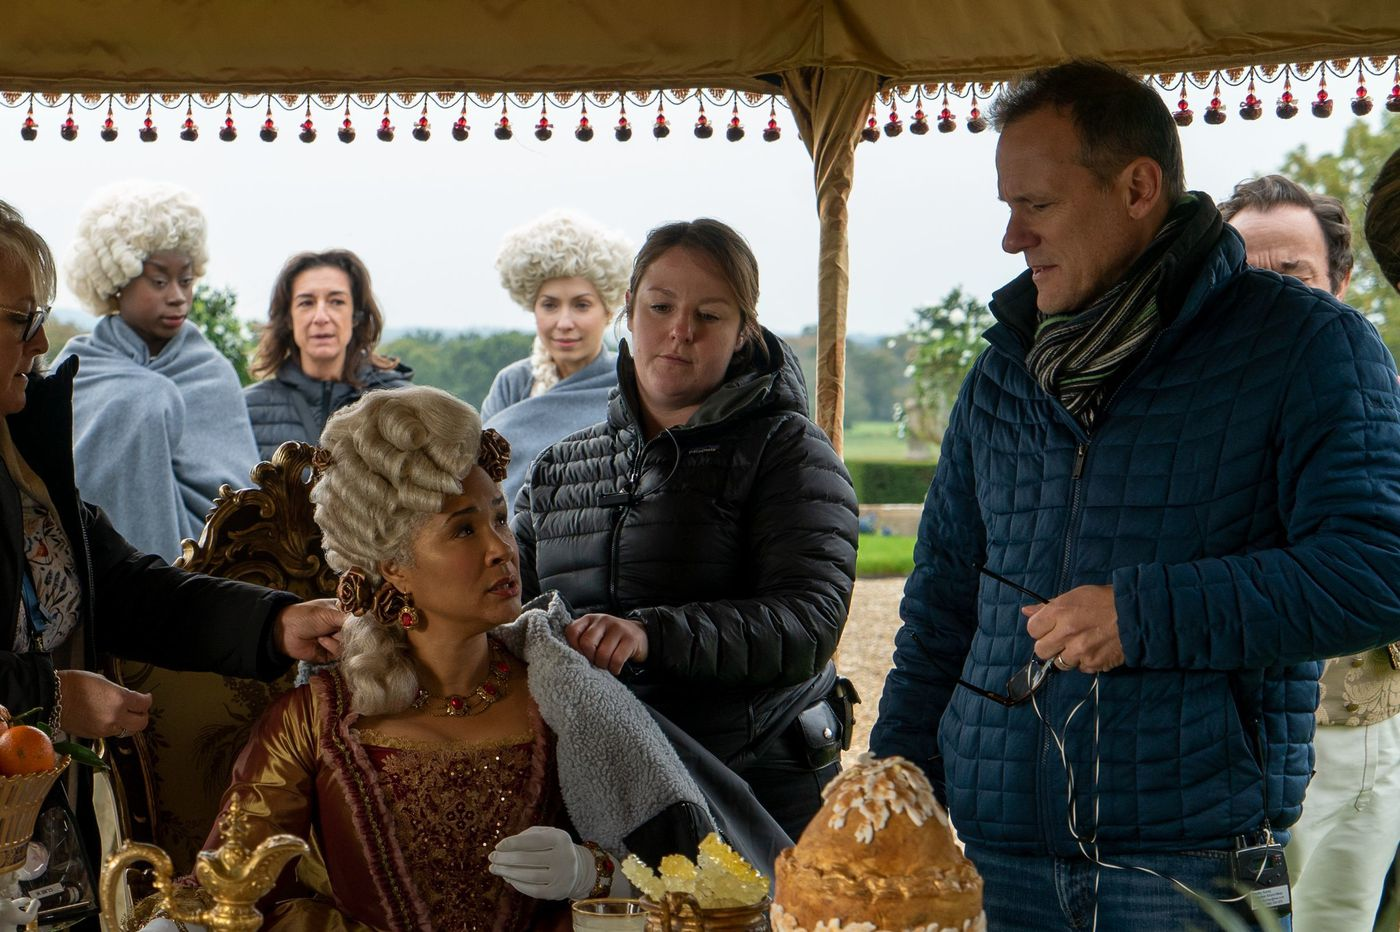 From Havertown to 'Bridgerton': Tom Verica talks about working on Netflix's hot new costume drama